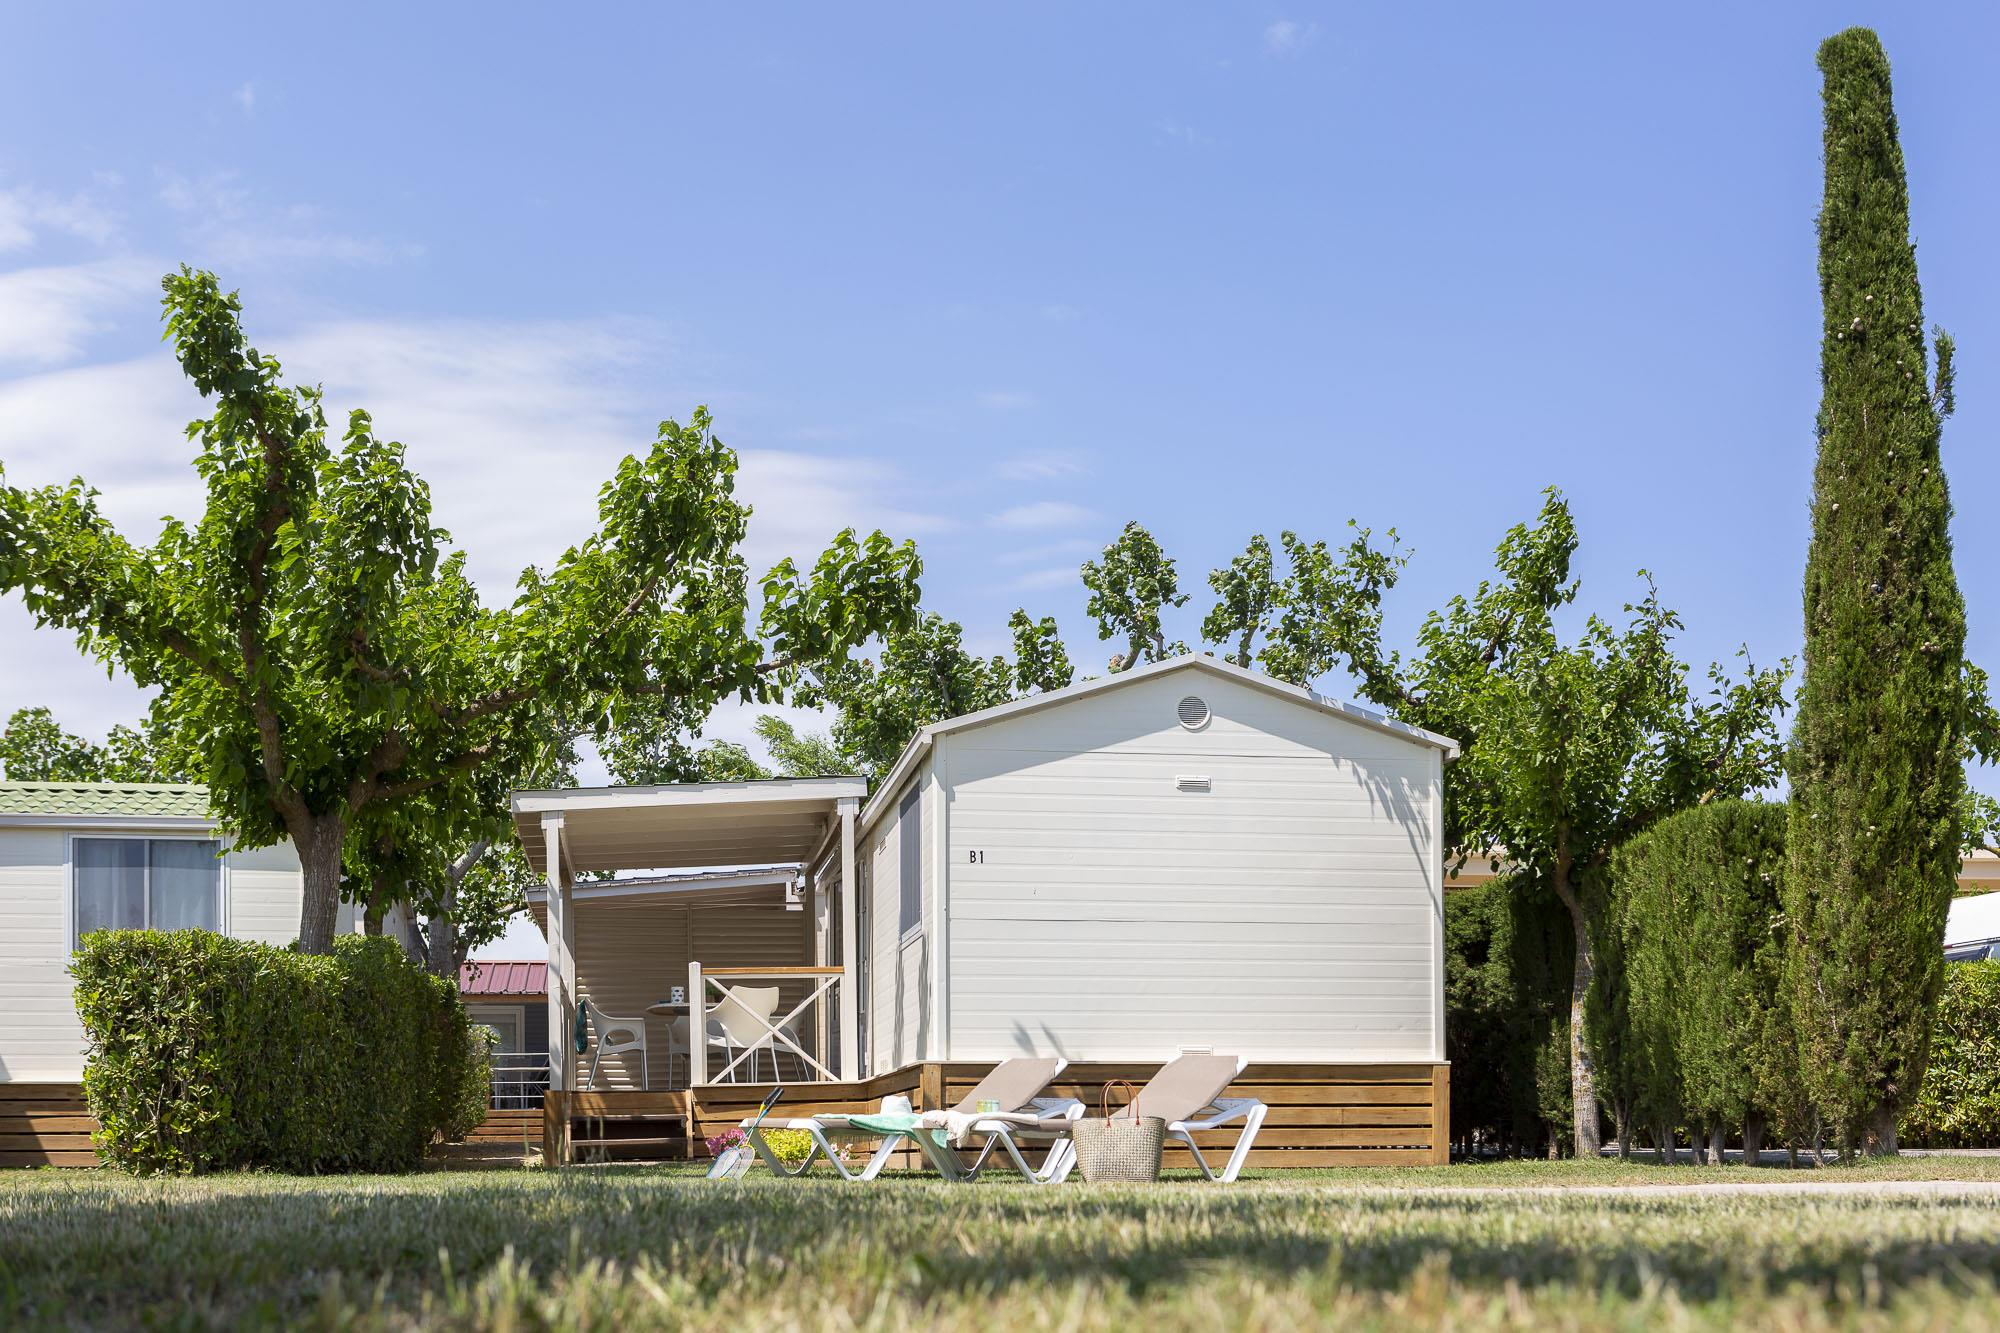 Accommodation - Mobilhome Sunny - Camping L'Amfora